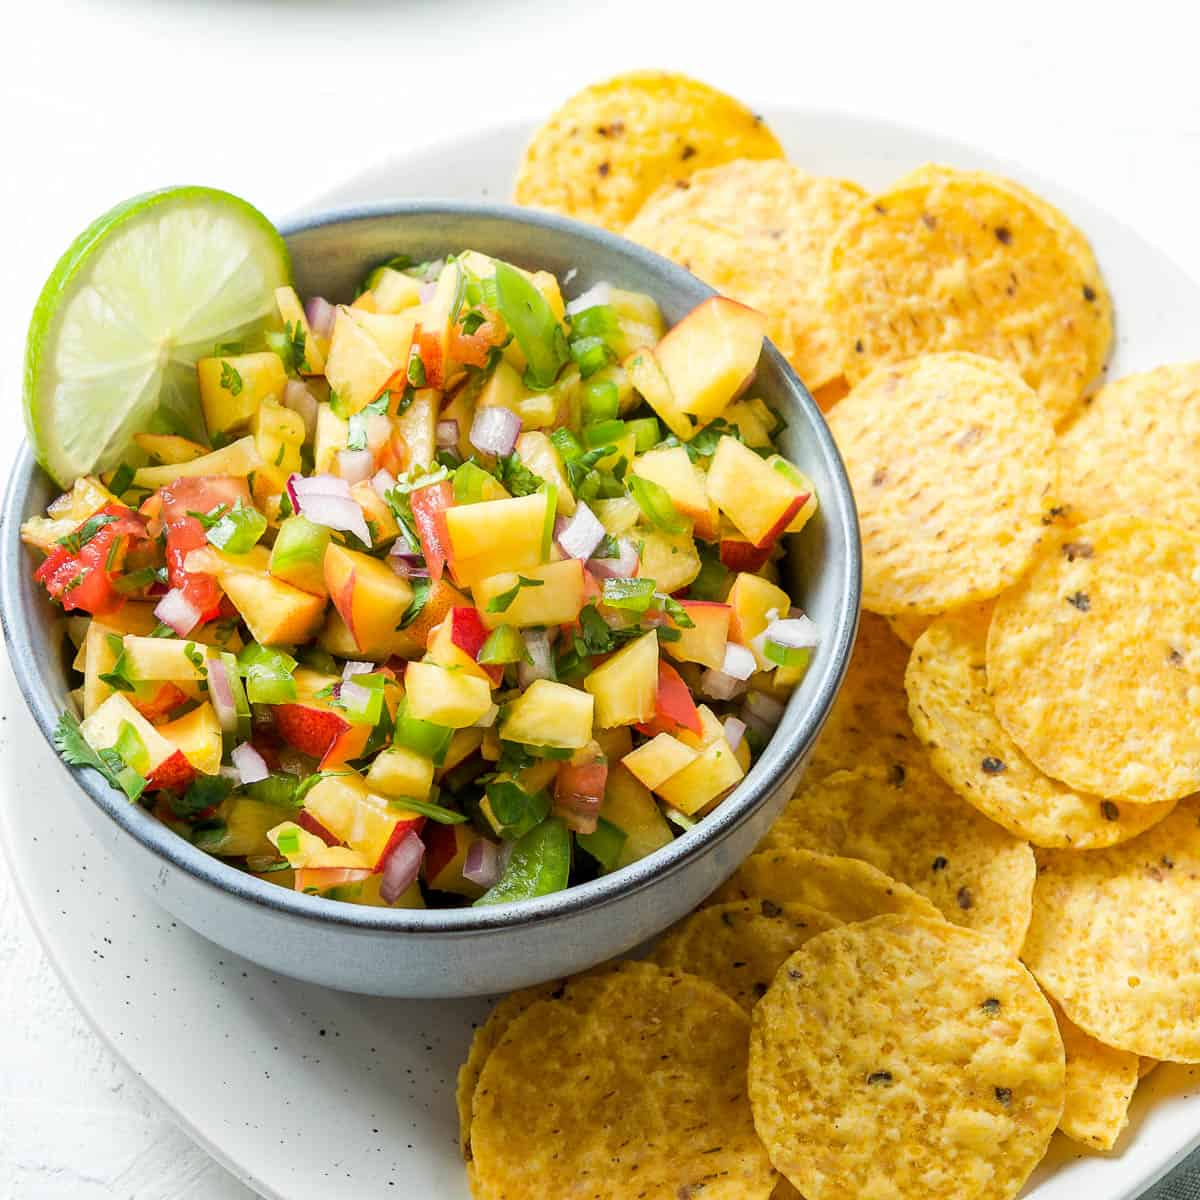 small bowl of salsa, sitting on a plate with corn chips on the side.